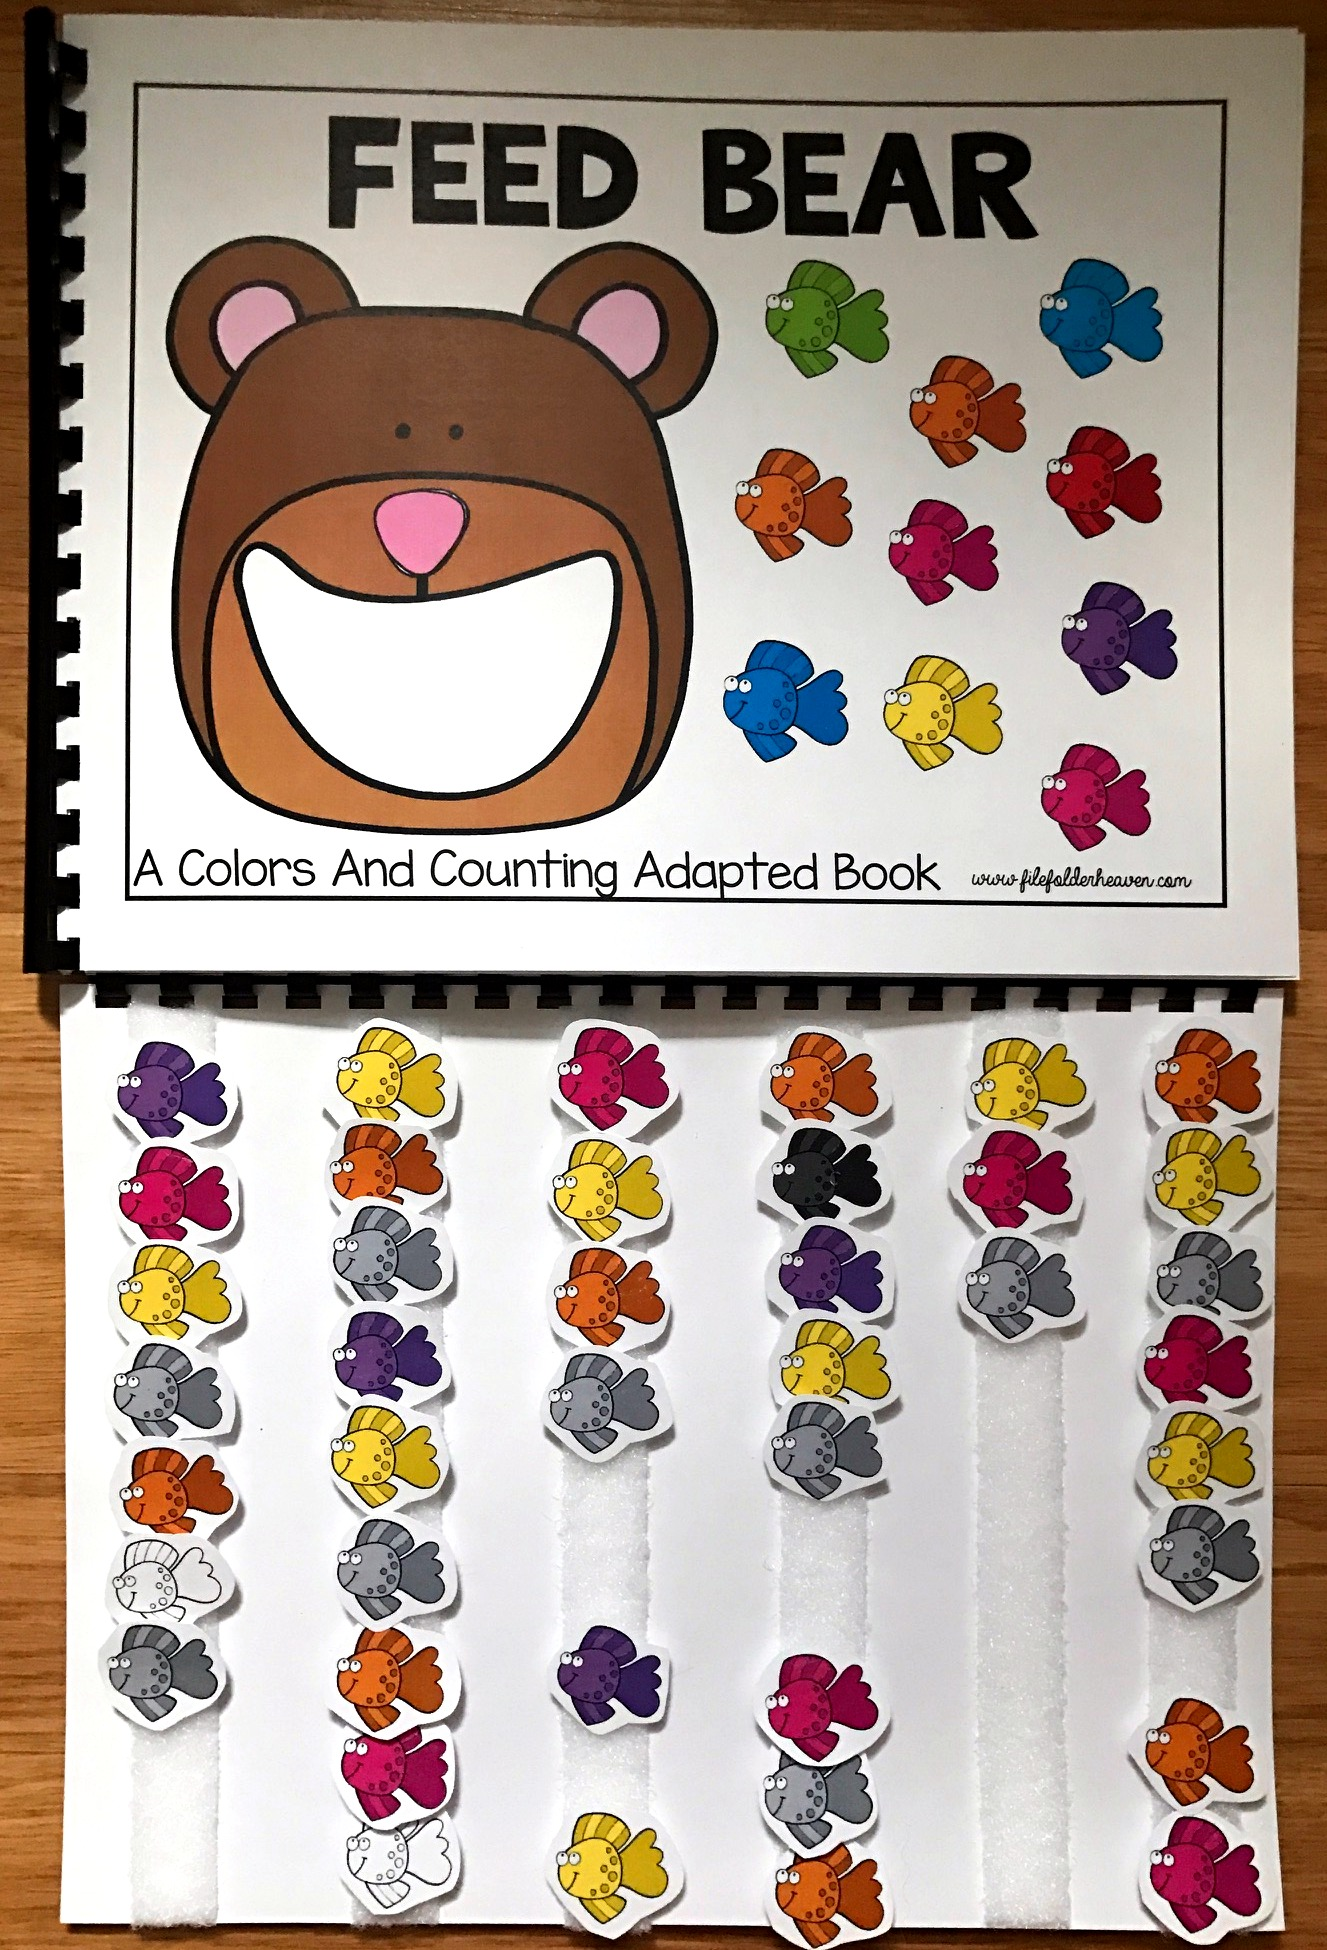 Feed Bear: A Colors and Counting Adapted Book